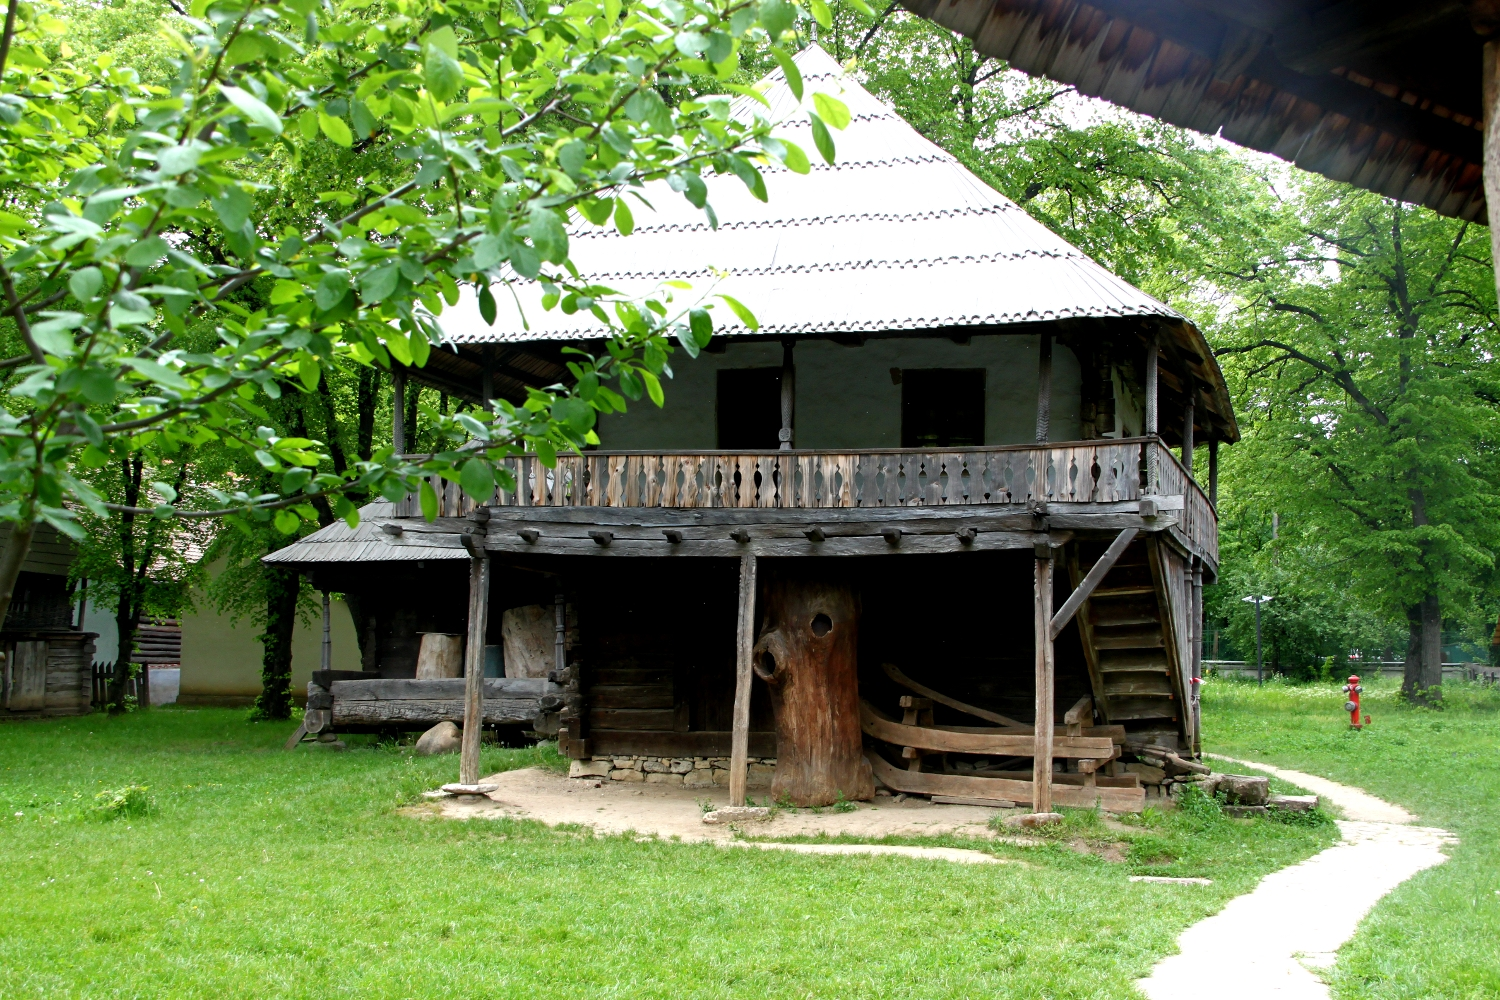 Household of rich peasants from gorj romania in 1800 travel moments in time - Romanian peasant houses ...